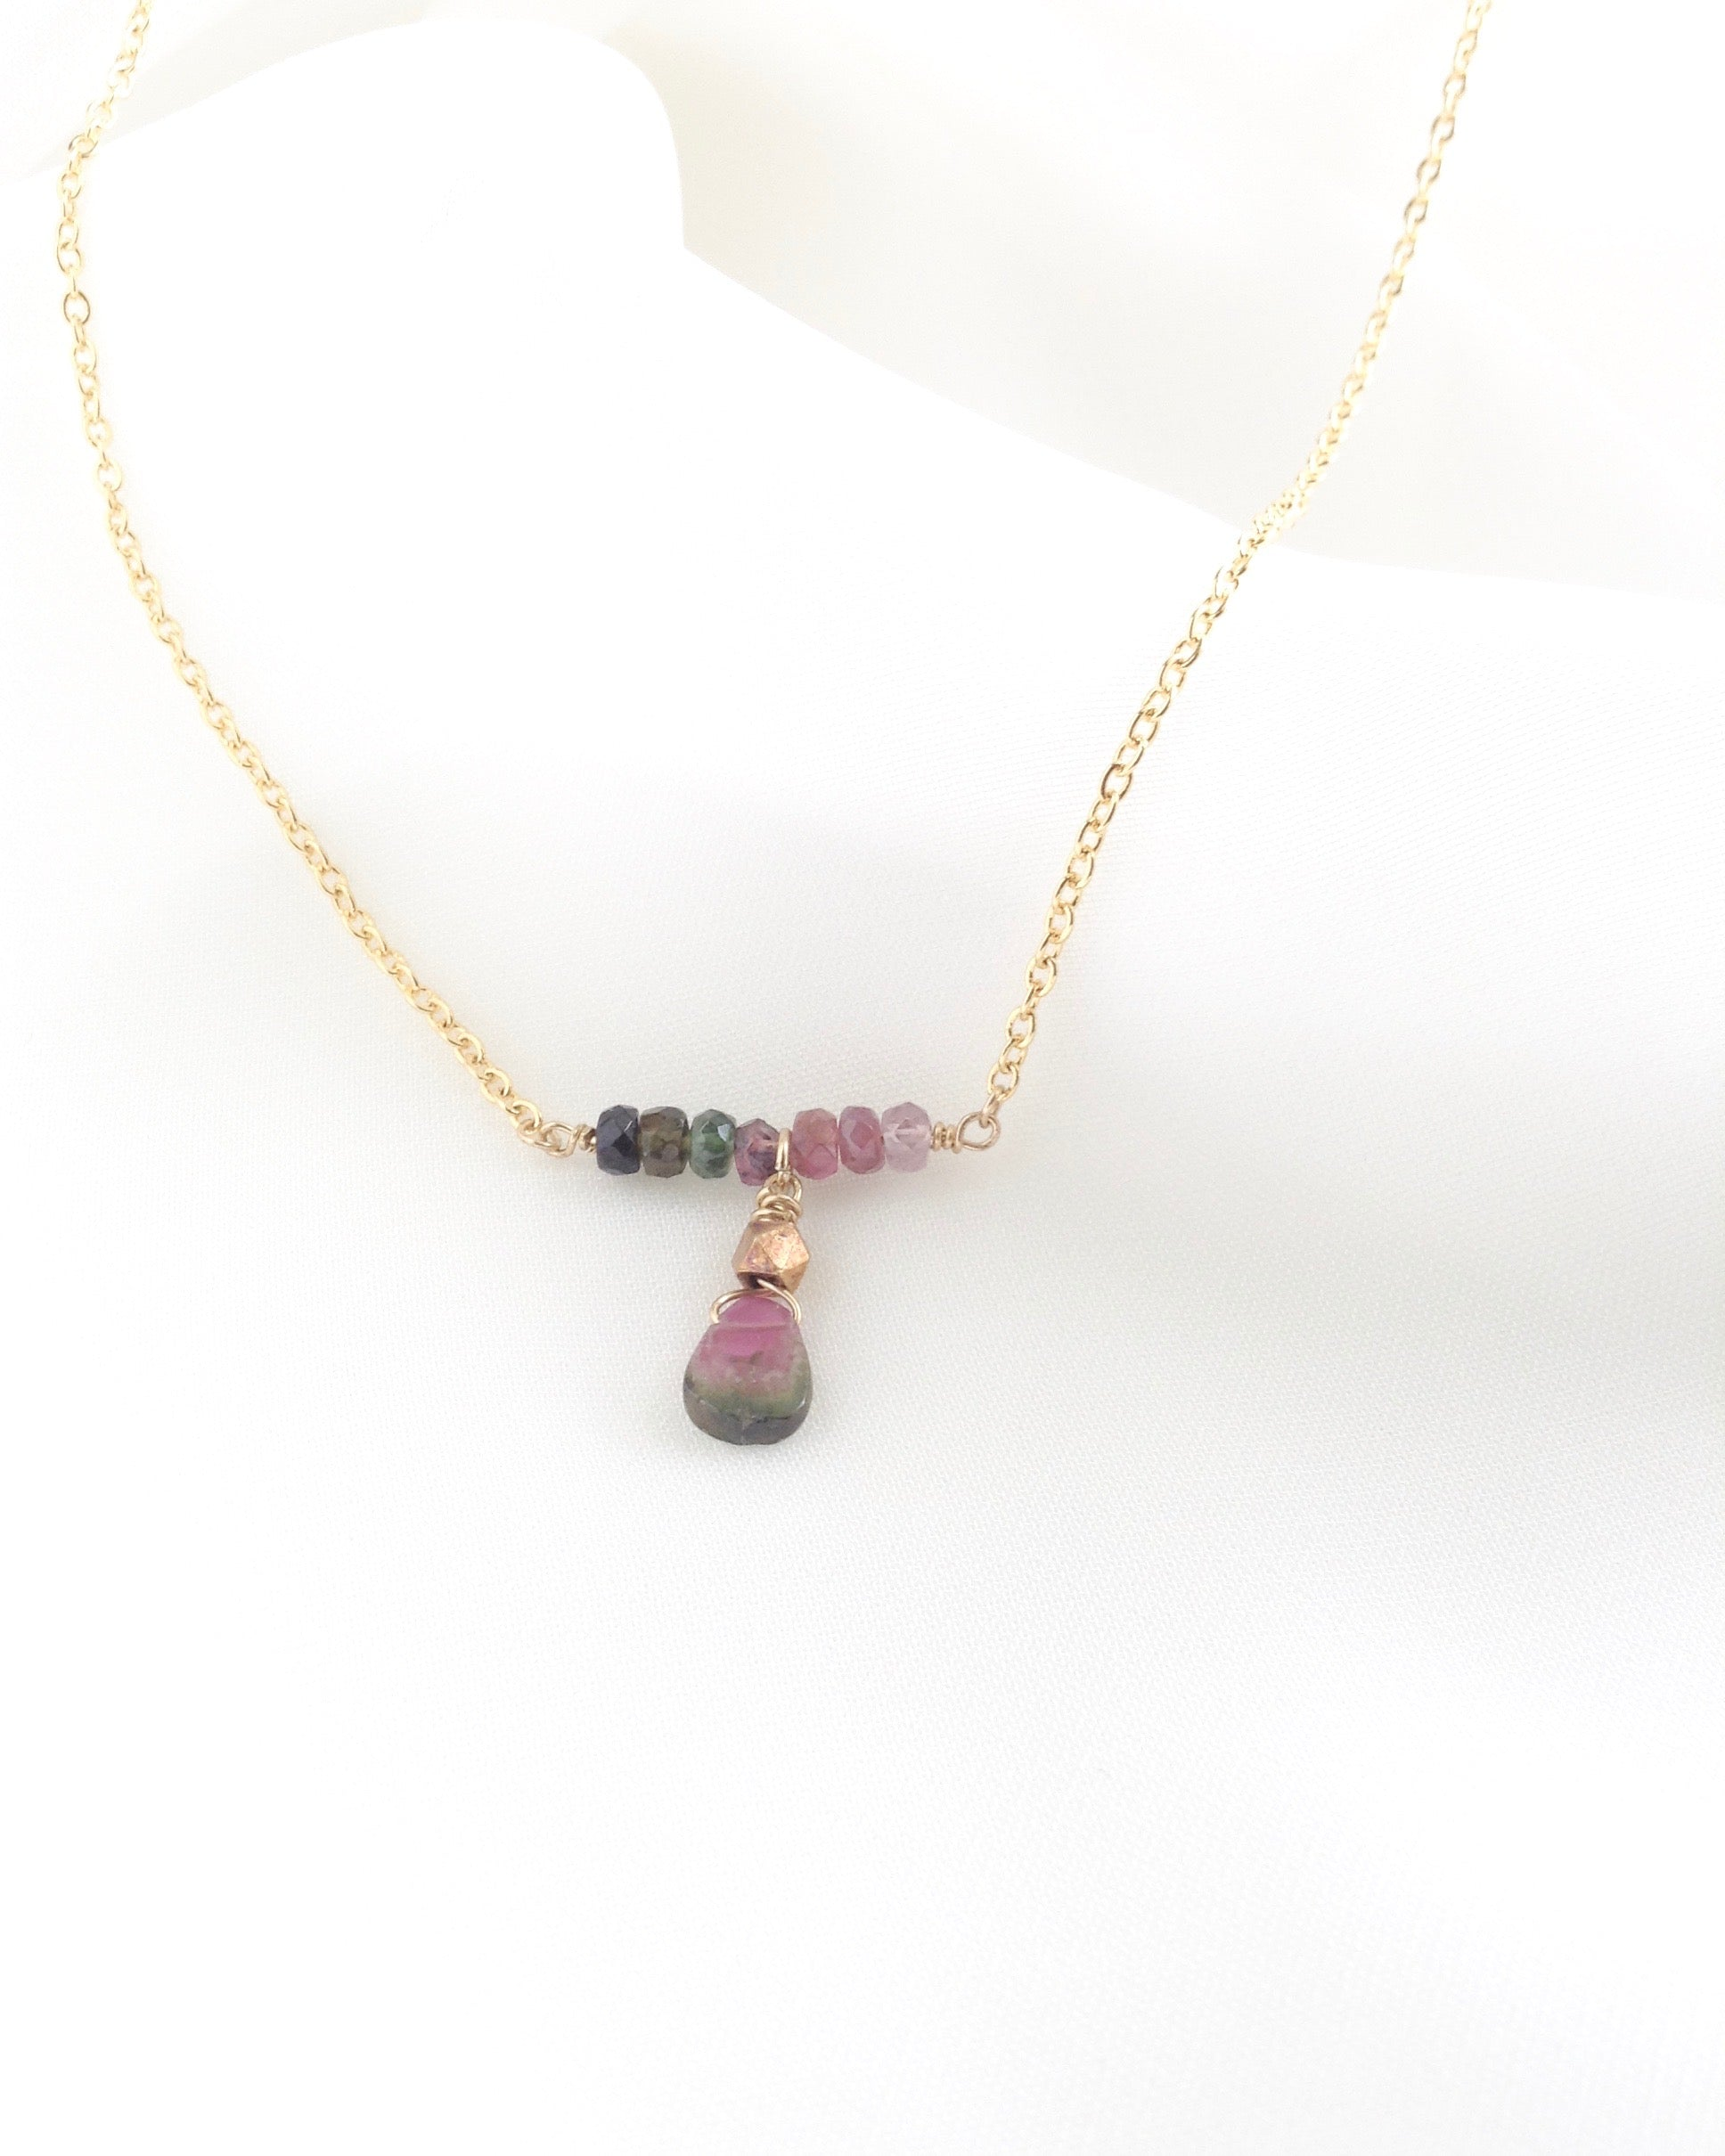 Rainbow Tourmaline Necklace in Gold Filled or Sterling Silver | Delicate Gemstone Necklace | IB Jewelry